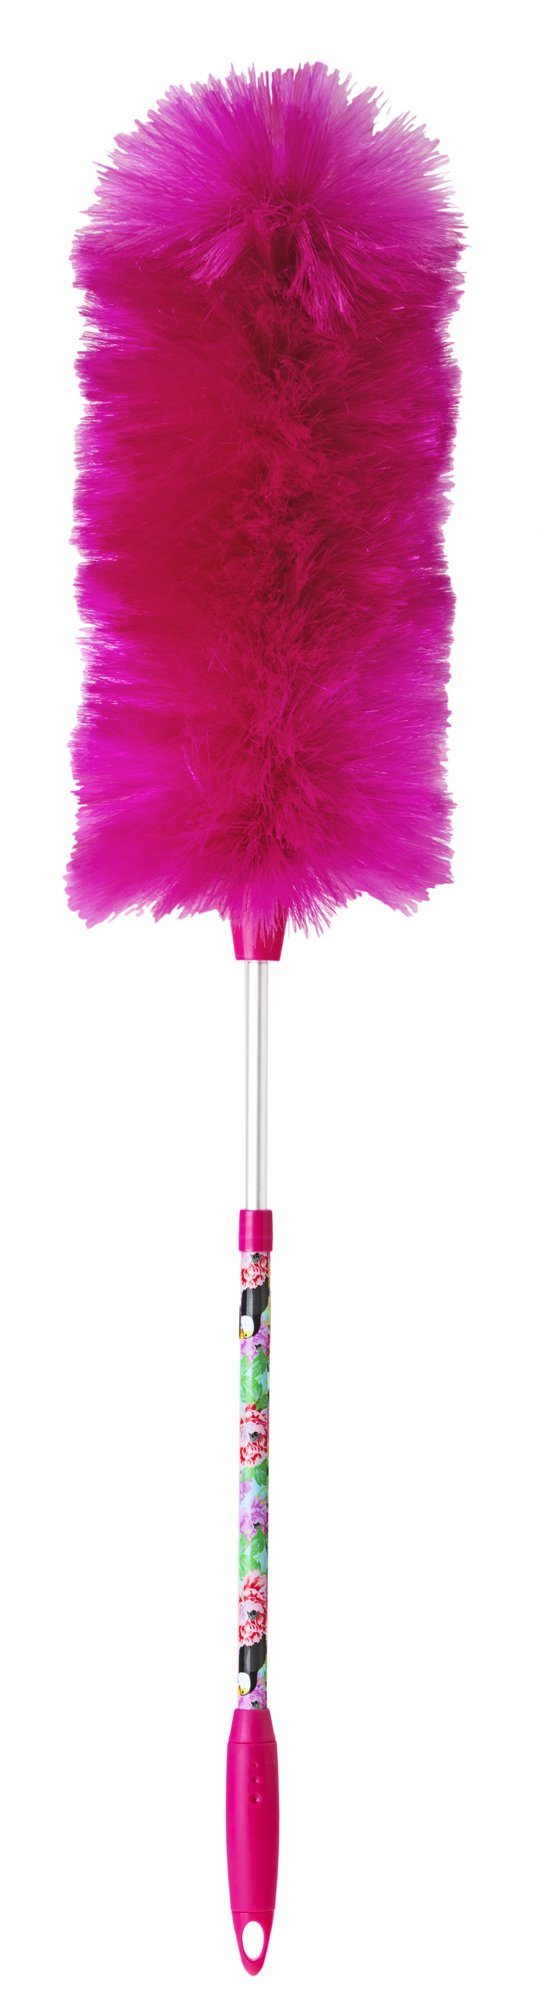 Vigar Toucan Static Duster with Extendable Handle, 6-3/4-Inches by 6-3/4-Inches by 31-Inches; Multi Colored